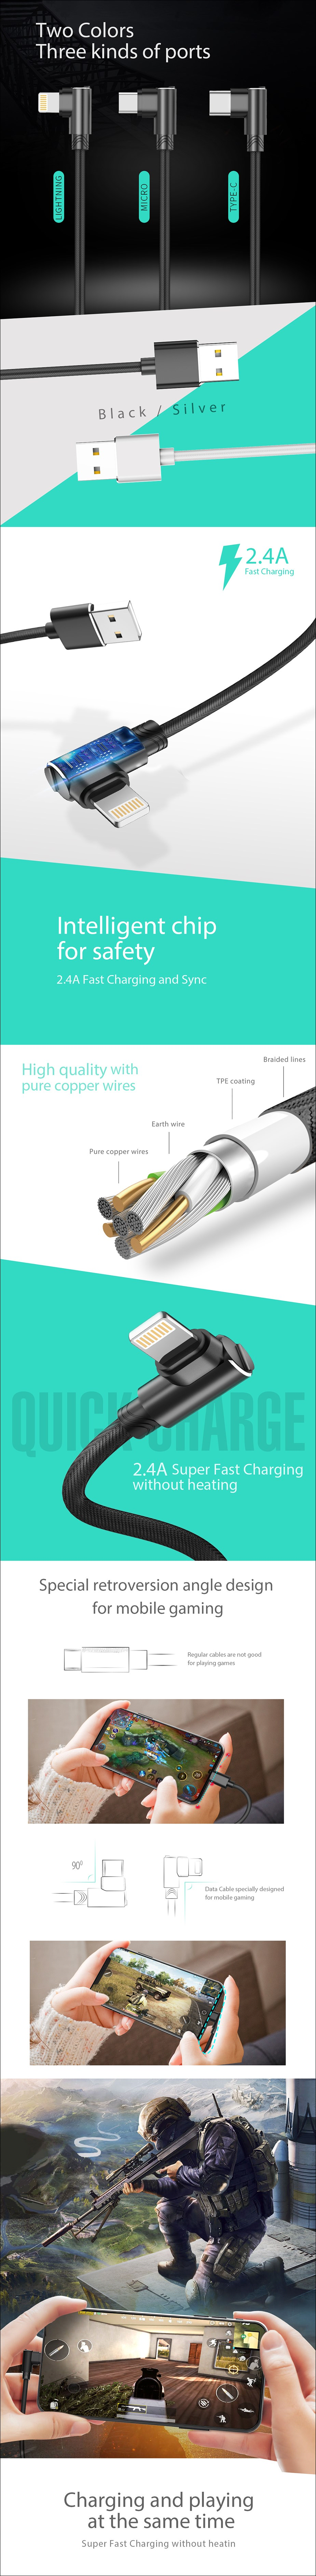 XiPin LX17 1.2m Nylon Braided Charging Cable - USB Type-C - Overview 1